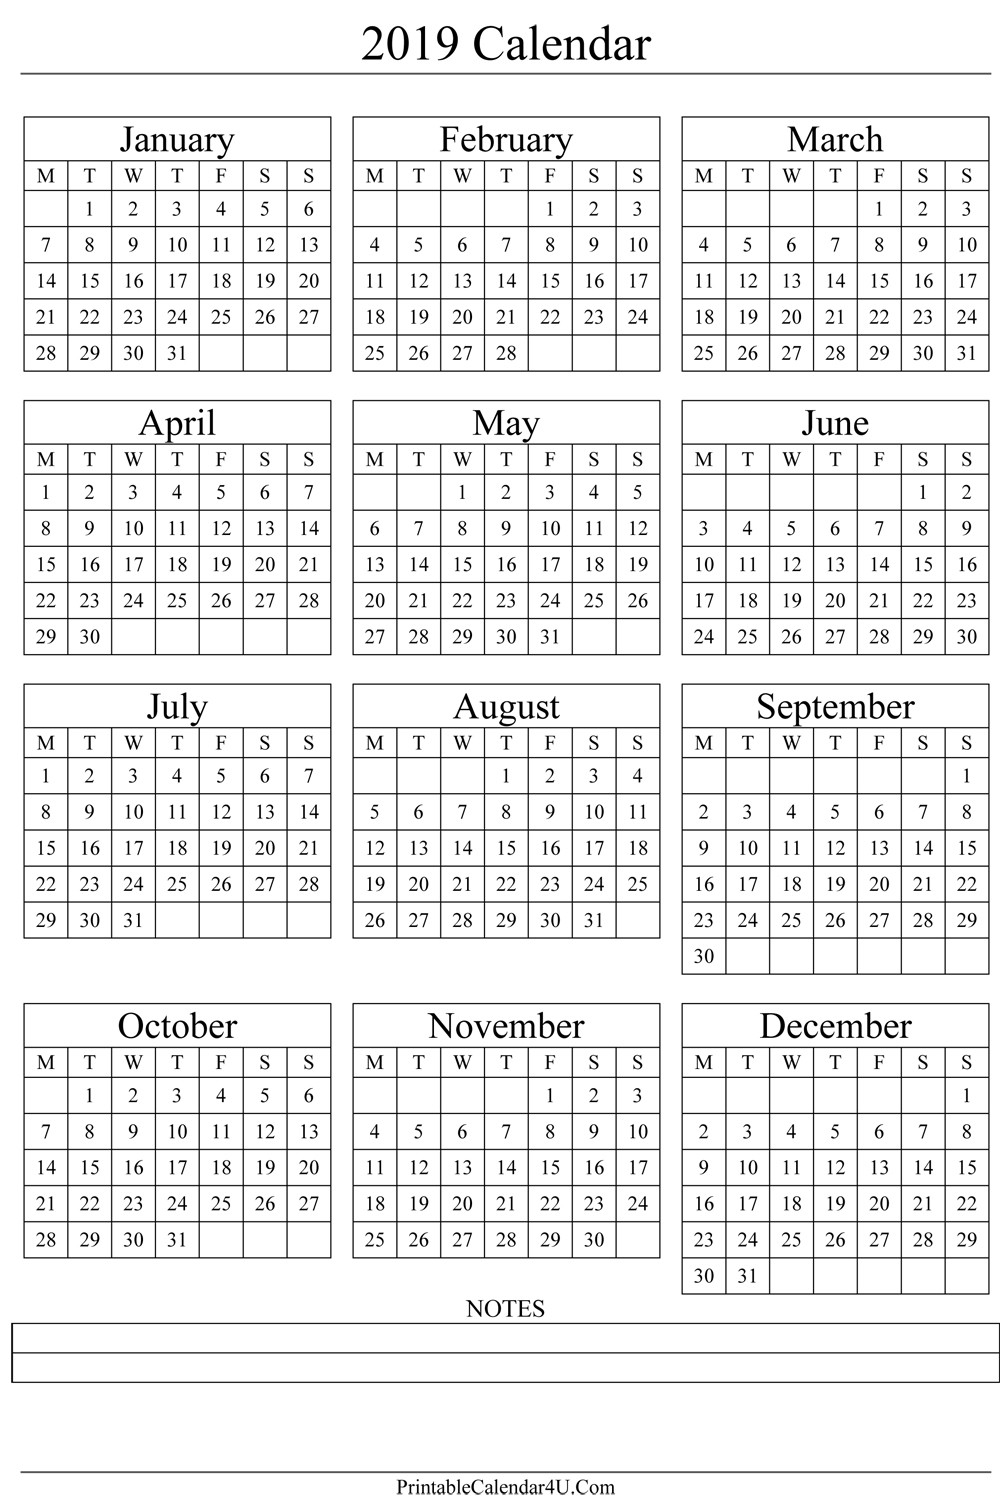 2019 Year Calendar One Page With Printable Yearly Holidays Annual